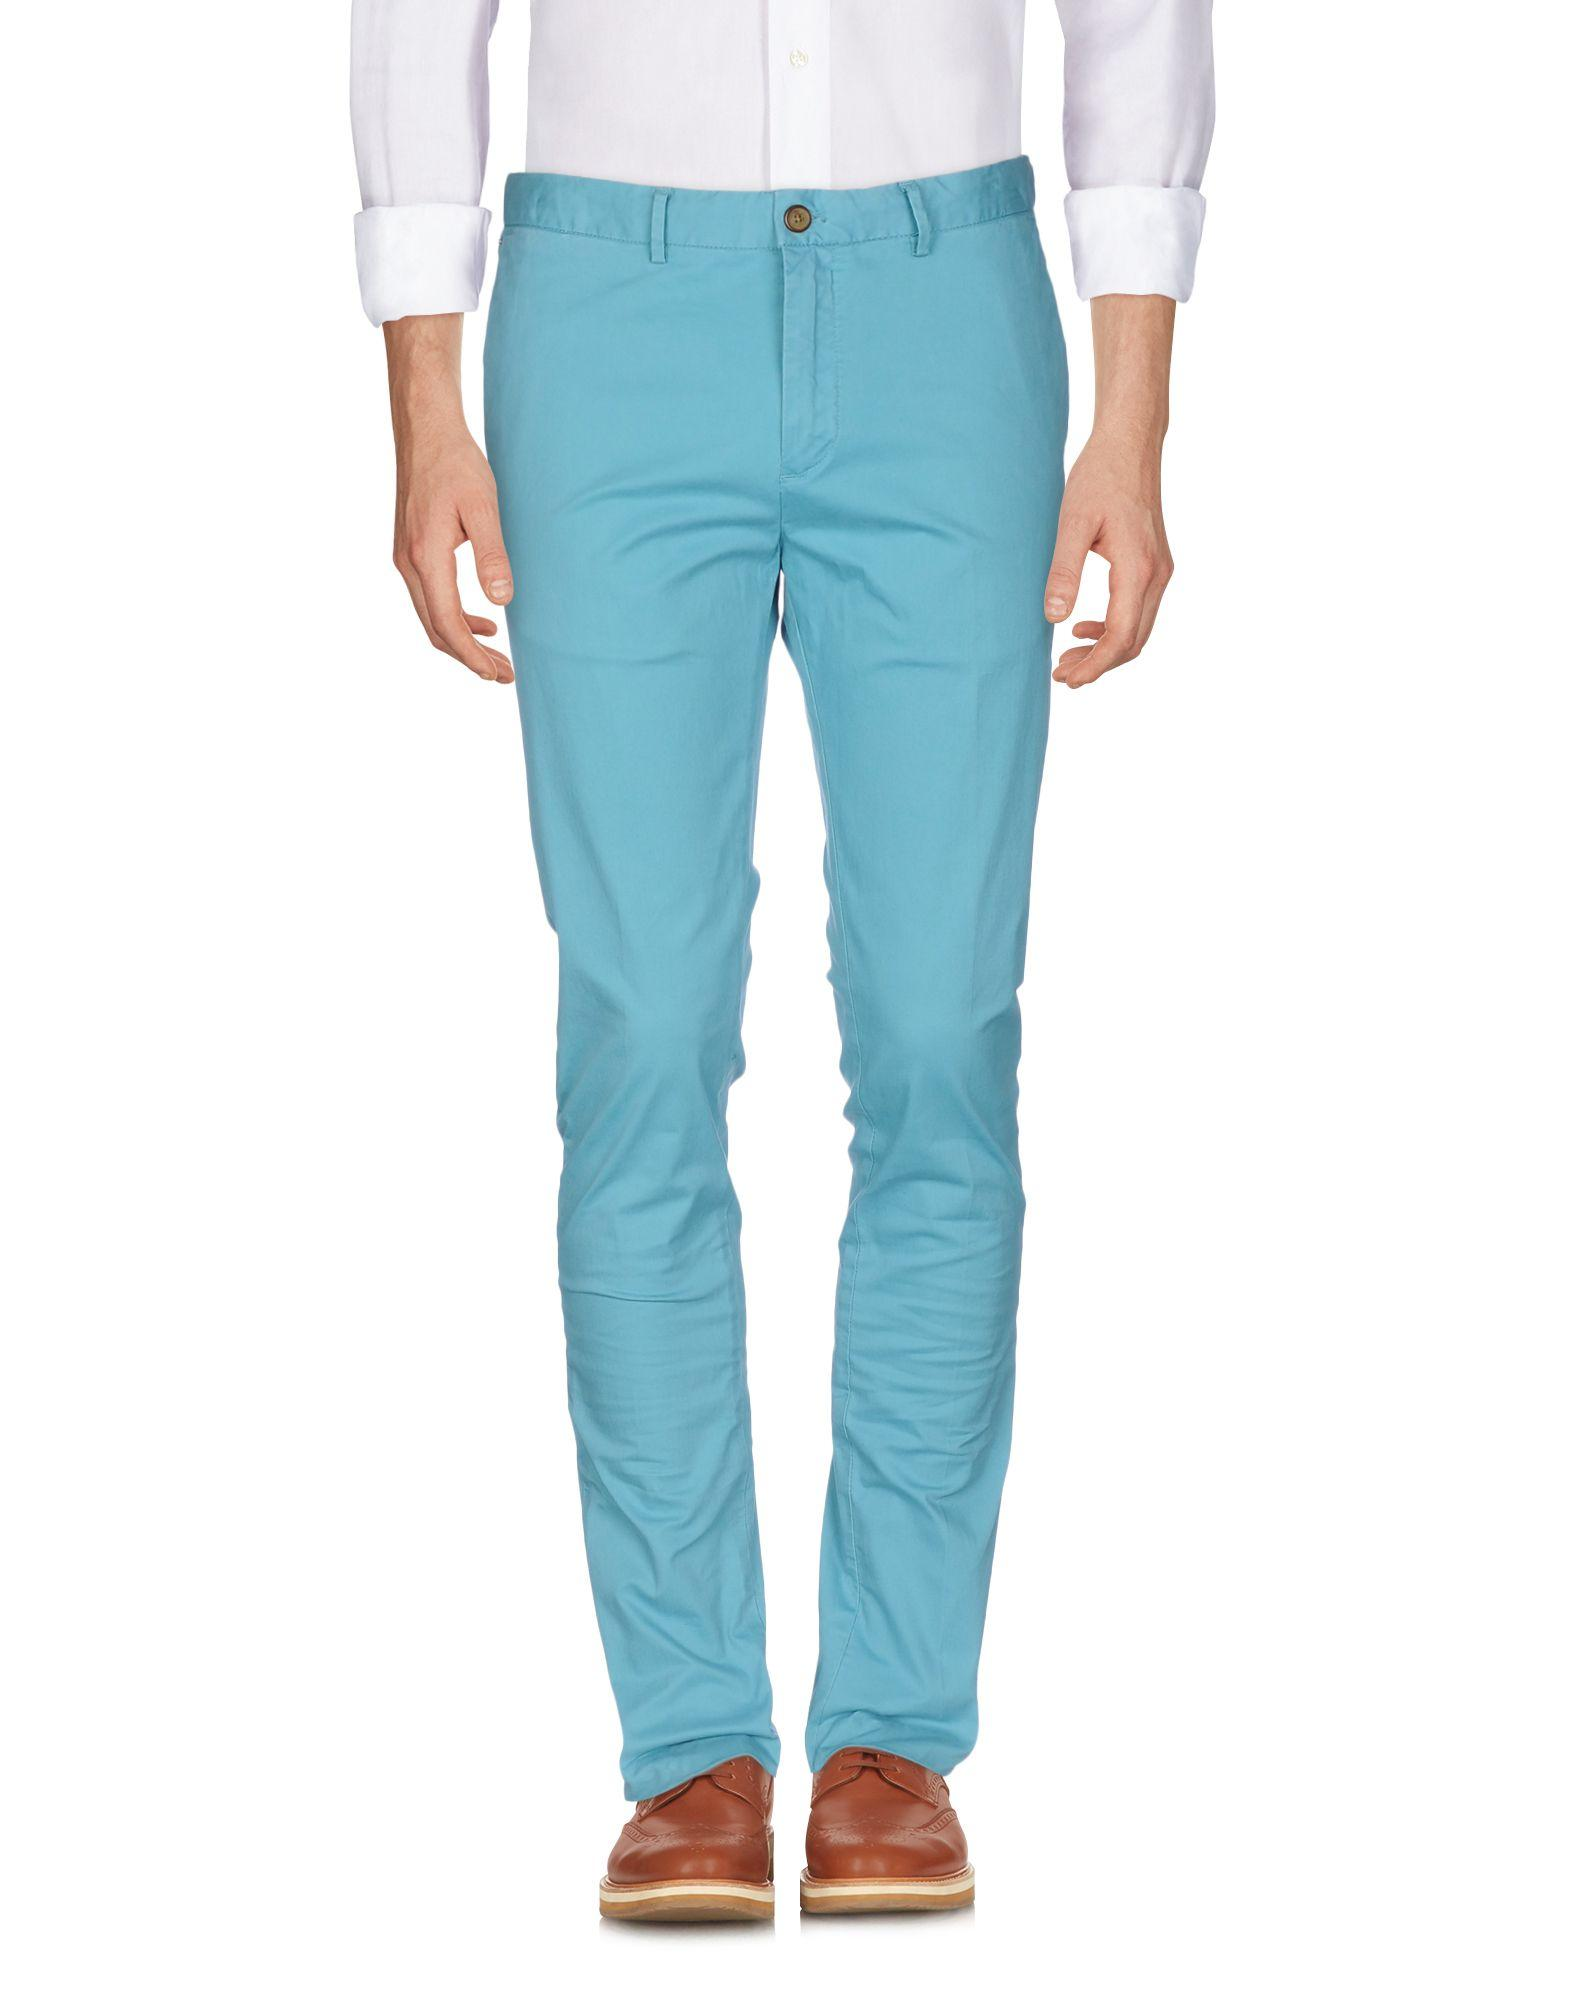 Scotch & Soda In Turquoise